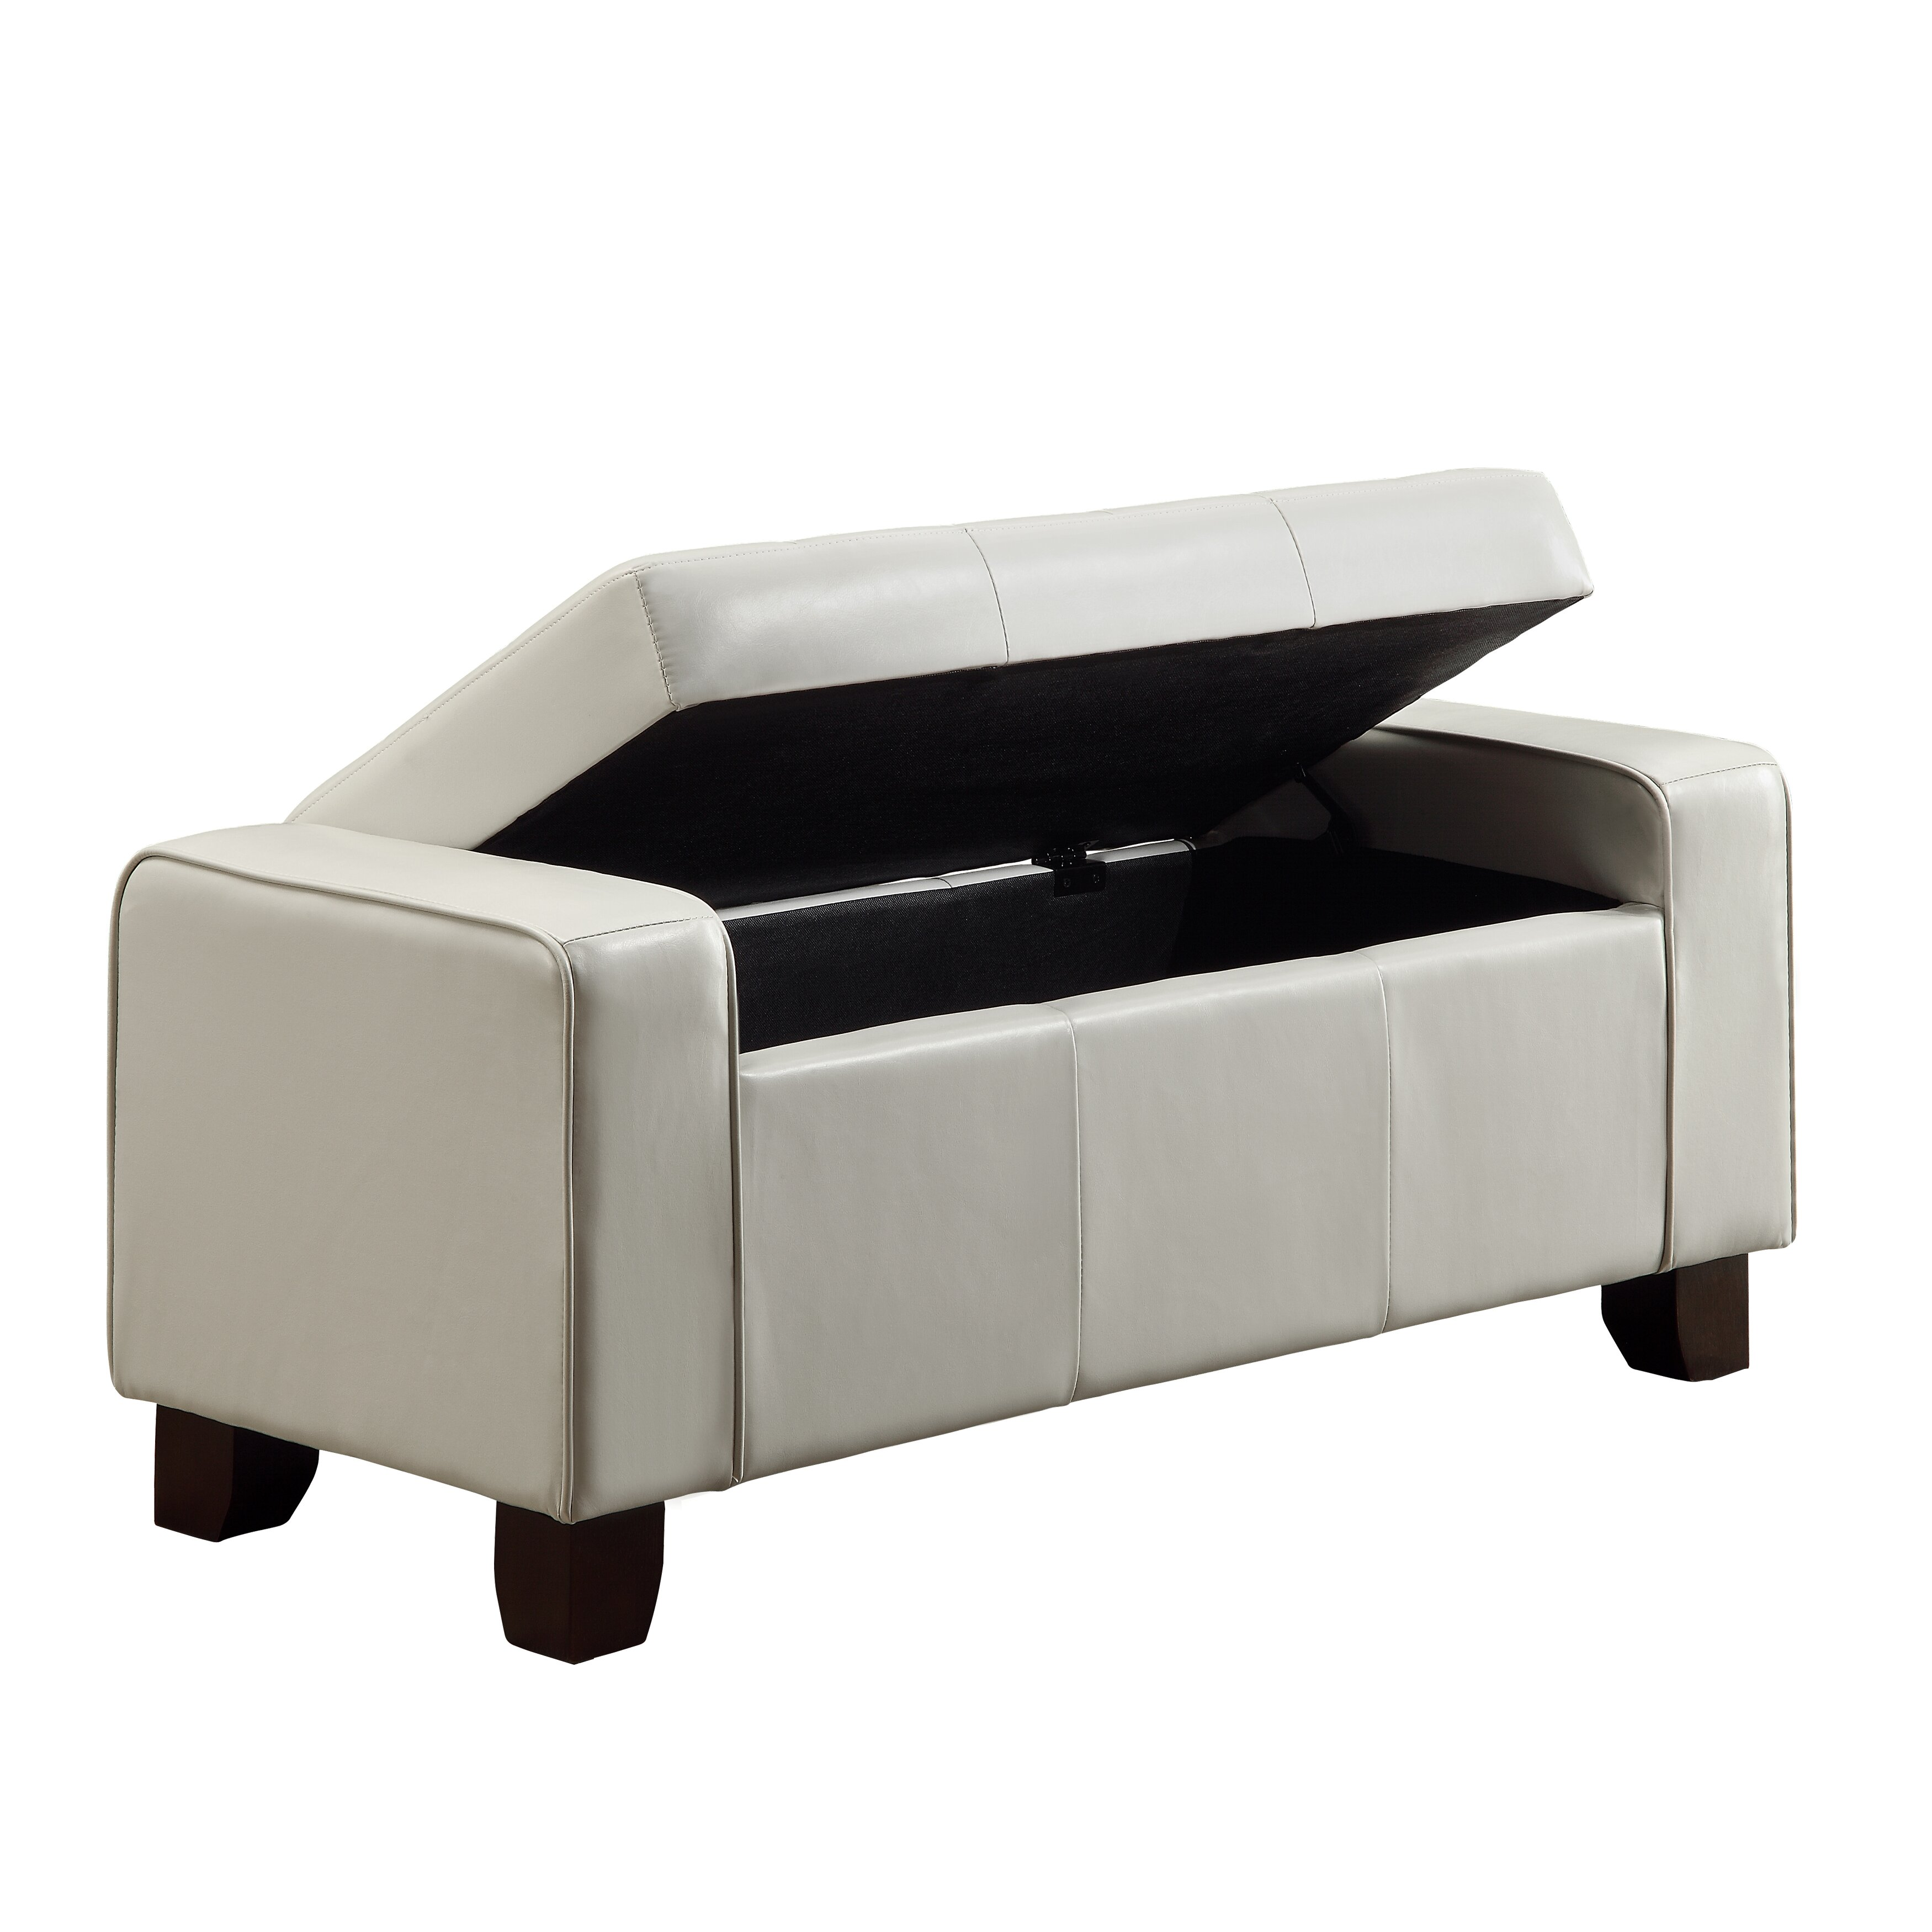 mulhouse furniture storage bedroom bench reviews wayfair